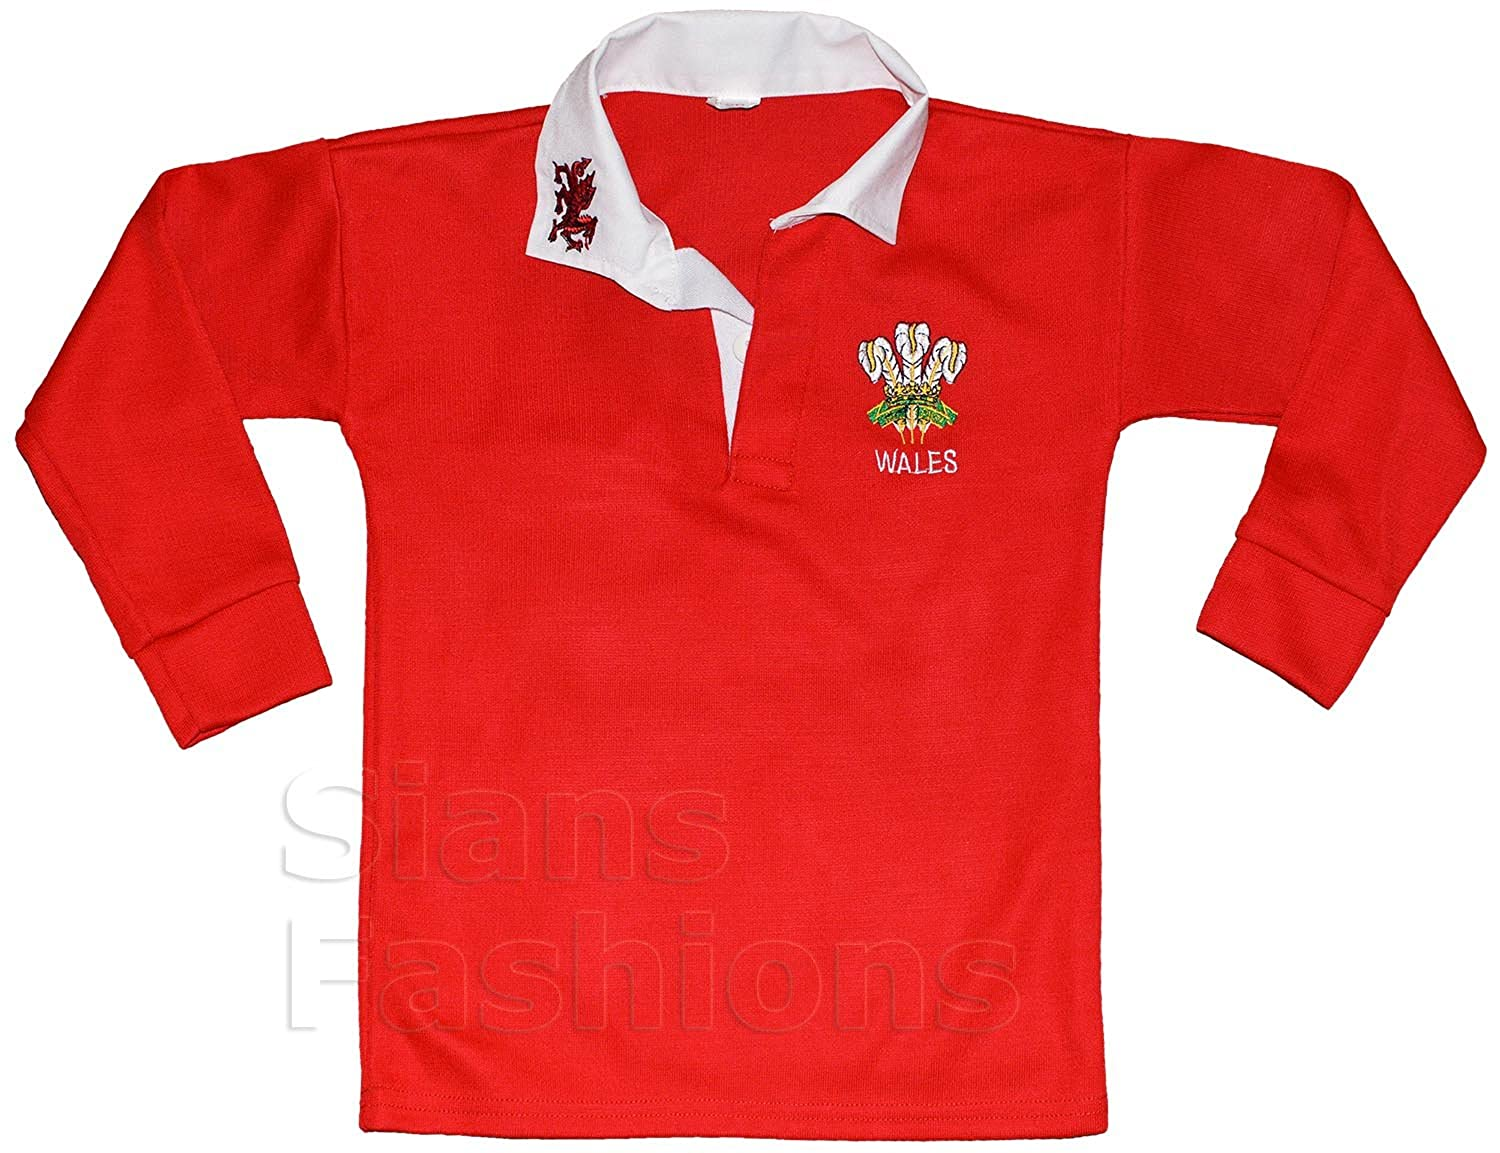 wales rugby shirt next day delivery date list. Black Bedroom Furniture Sets. Home Design Ideas